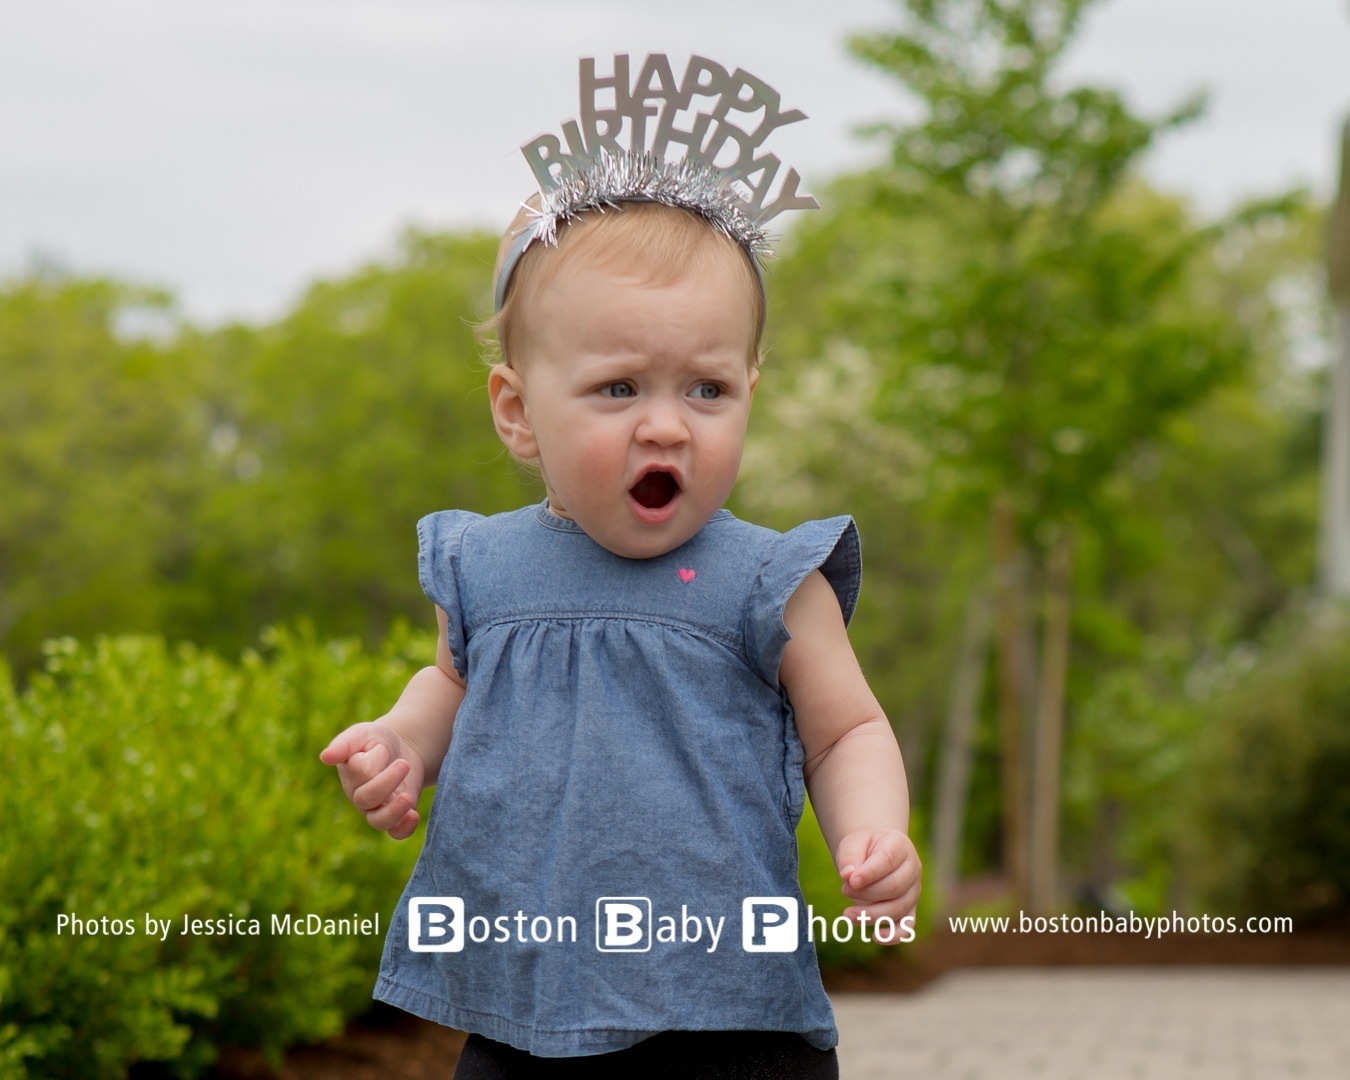 Dedham, MA: First Birthday Photoshoot